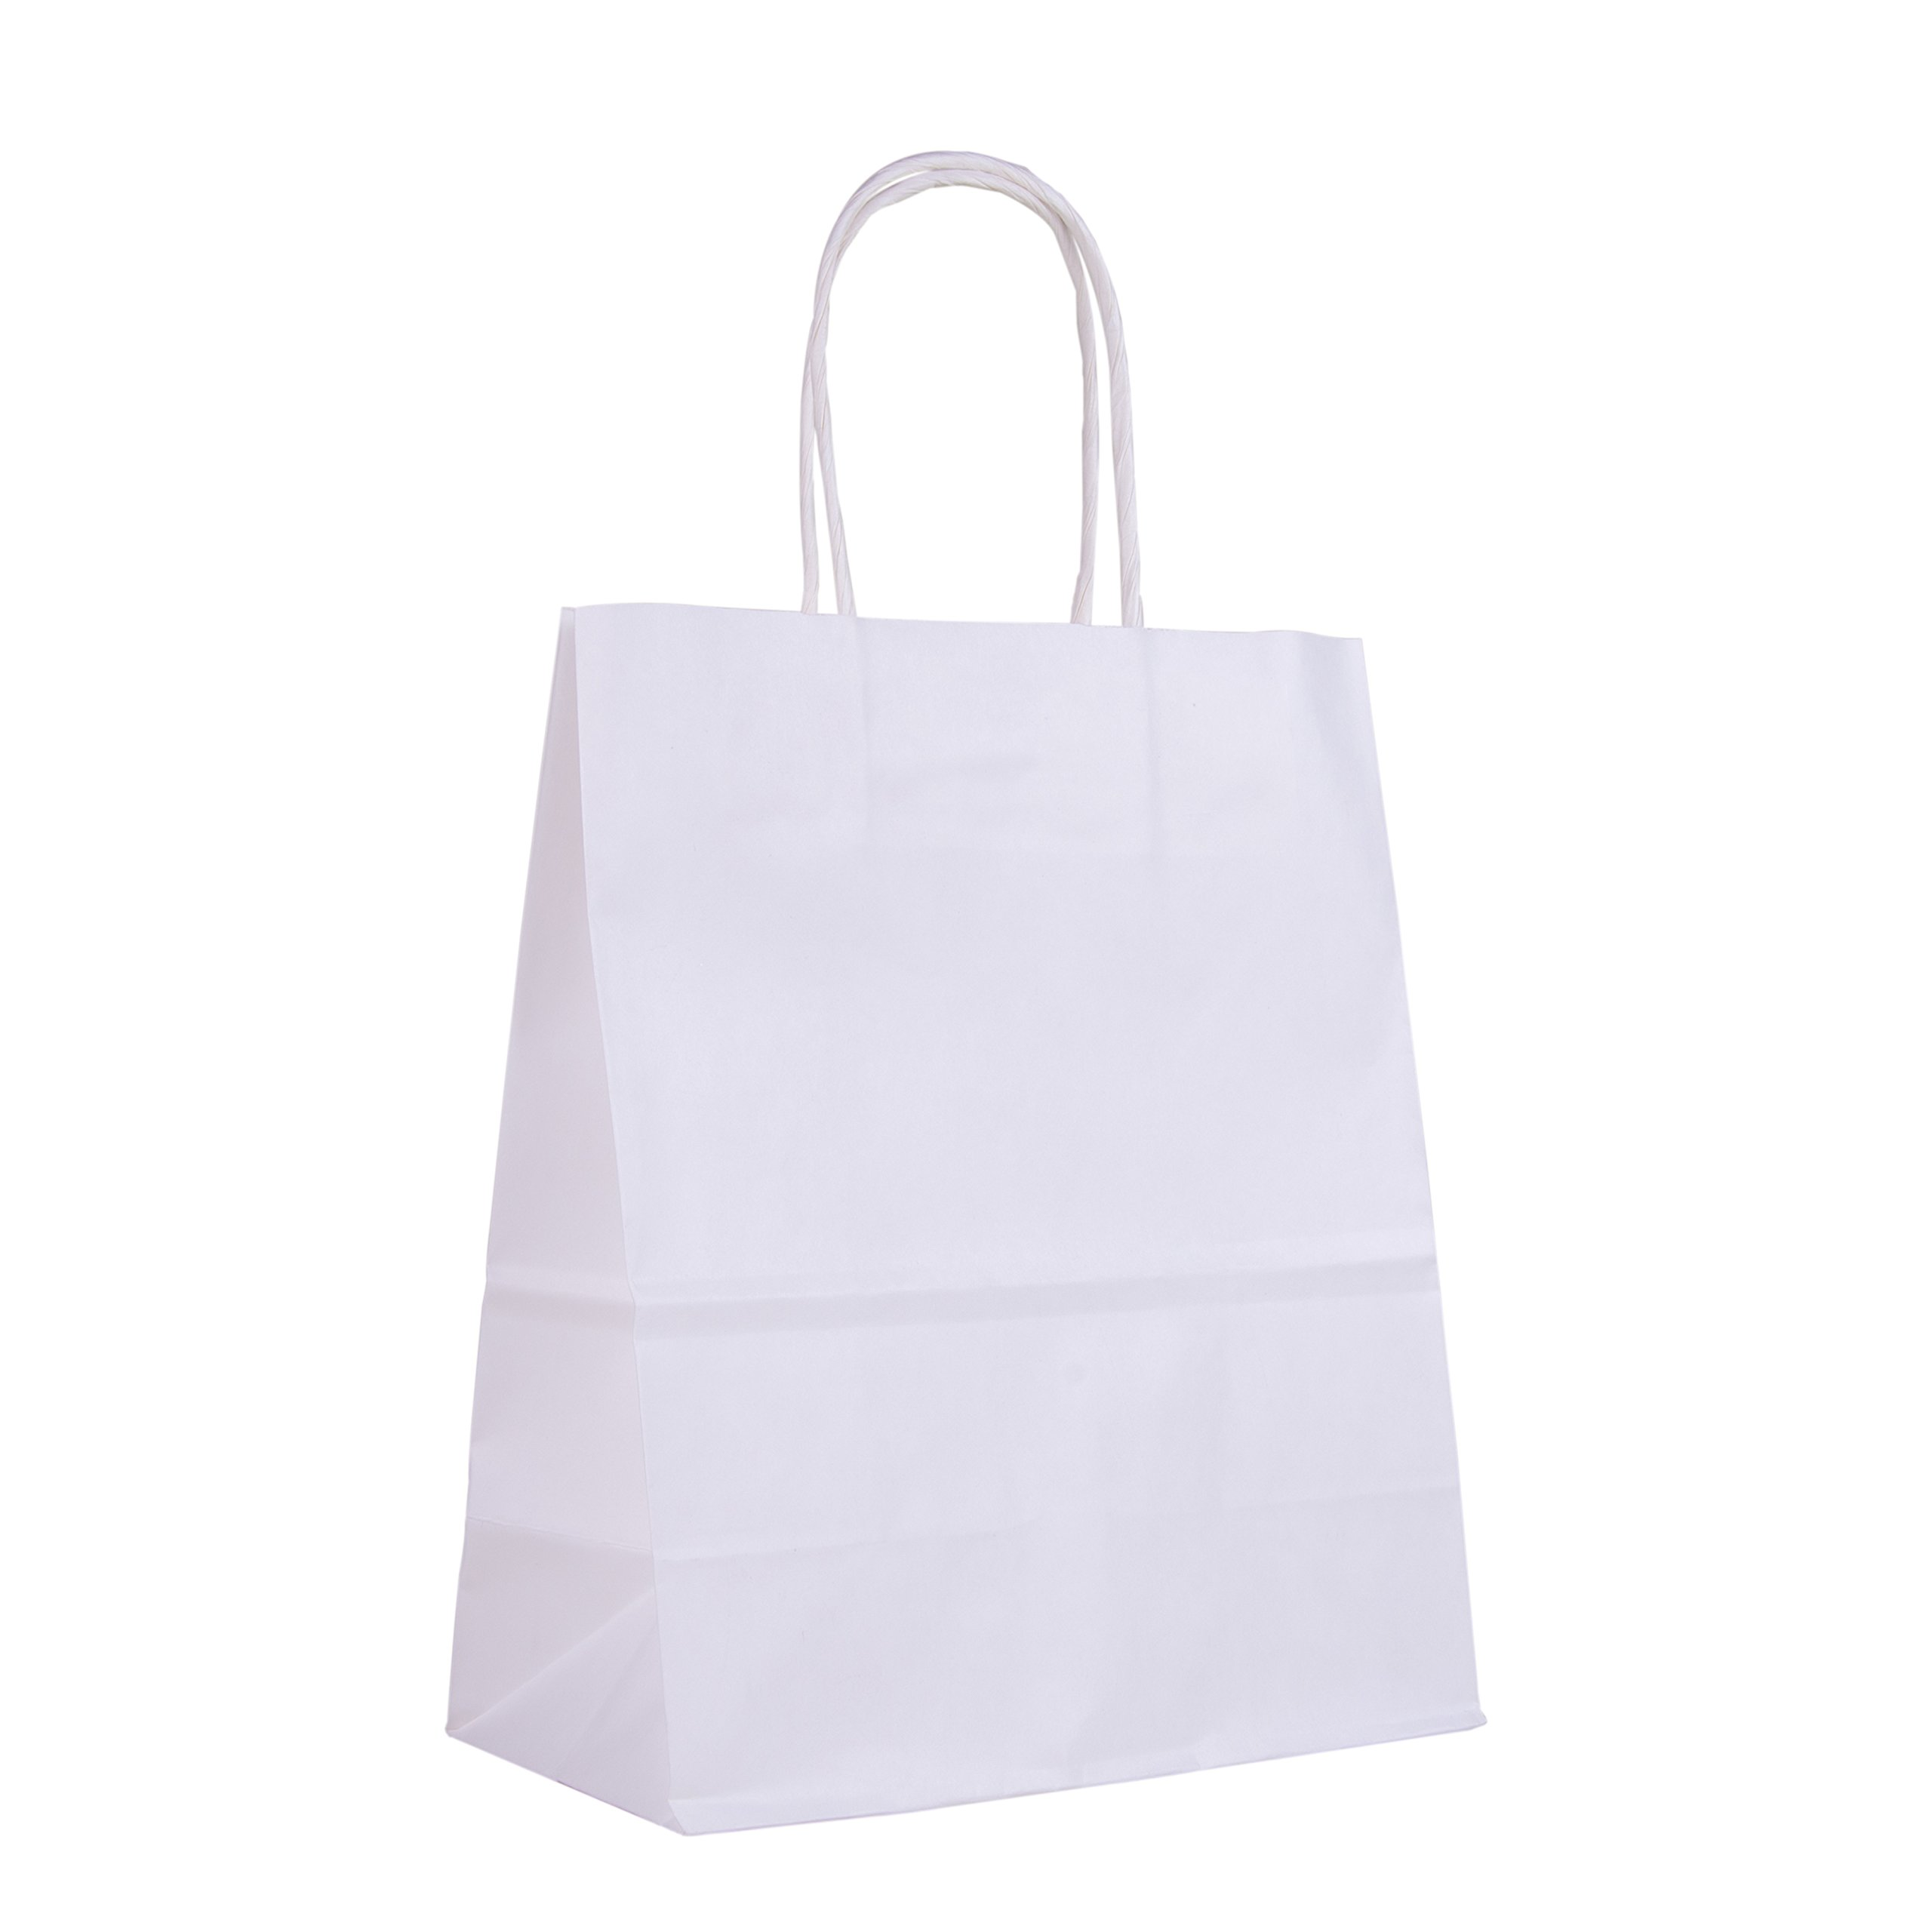 Incredible Packaging - 8'' x 5'' x 10'' Brown CUSTOM Kraft Paper Bags with Handles for Shopping, Retail and Merchandise. Strong and Reusable. (White, 4000) by Incredible Packaging (Image #5)